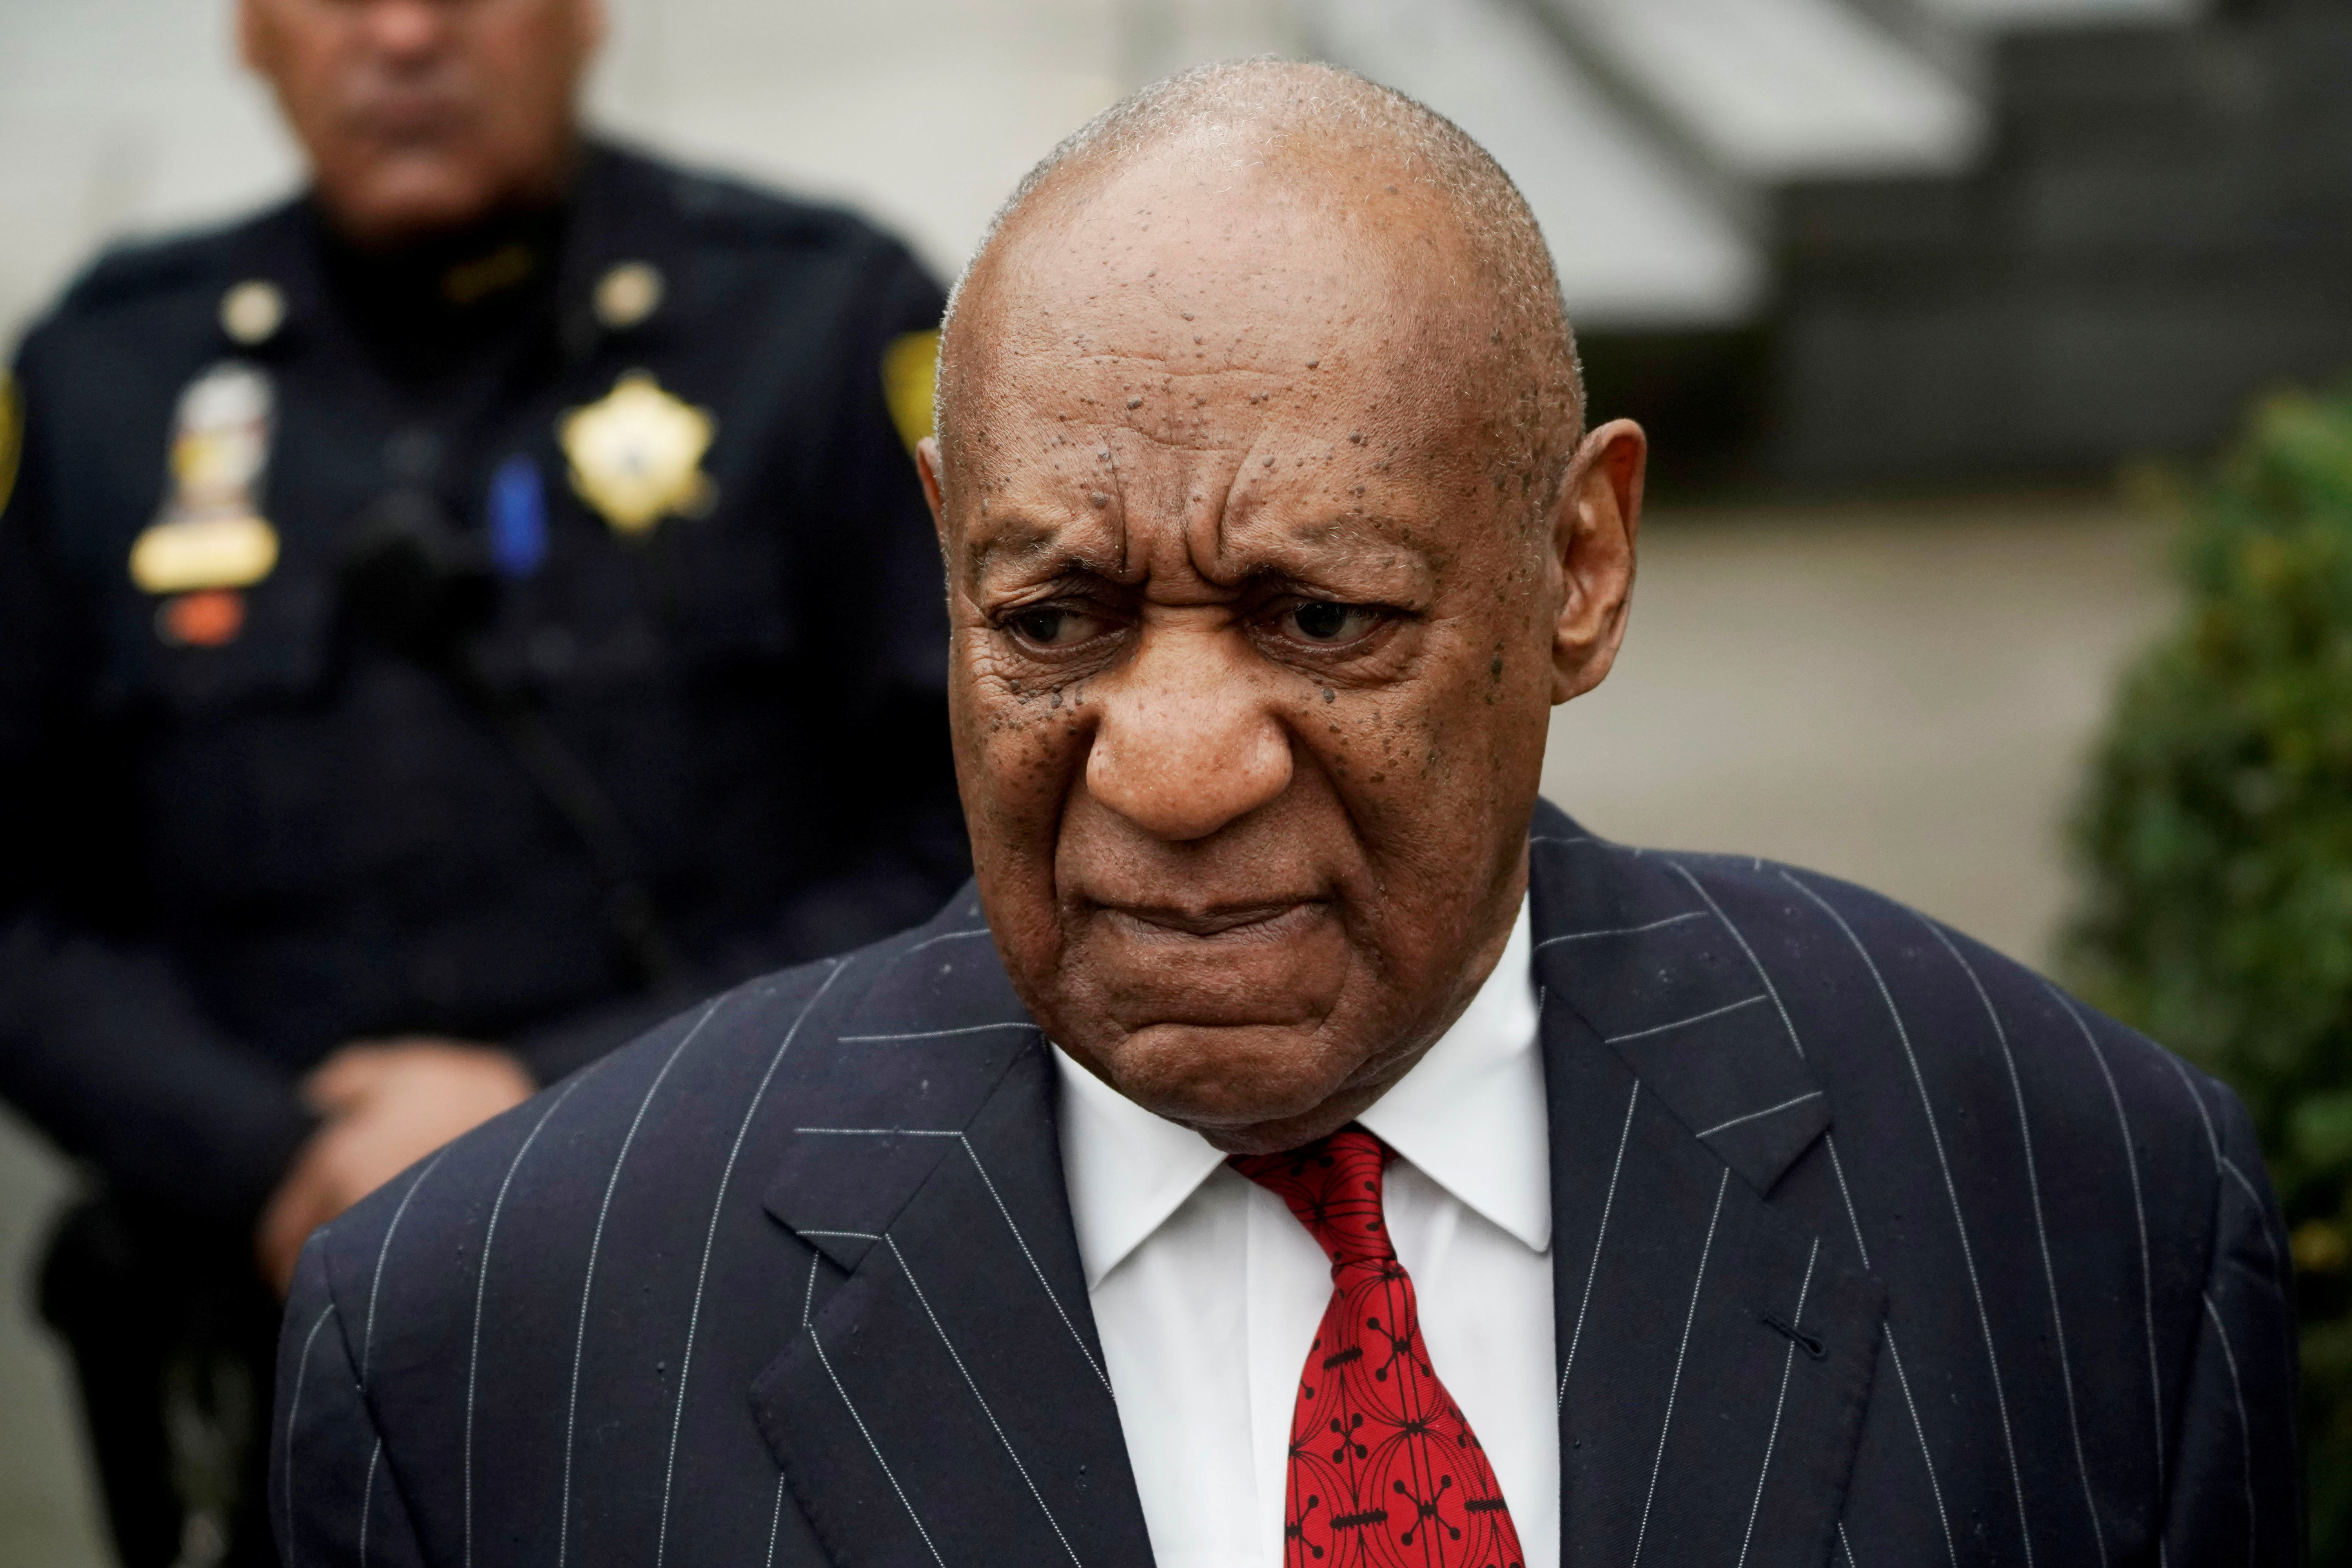 Actor and comedian Bill Cosby arrives for a pretrial hearing for his sexual assault trial at the Montgomery County Courthouse in Norristown, Pennsylvania,U.S., March 29, 2018.  REUTERS/Jessica Kourkounis     TPX IMAGES OF THE DAY       TO MATCH INSIGHT XXX